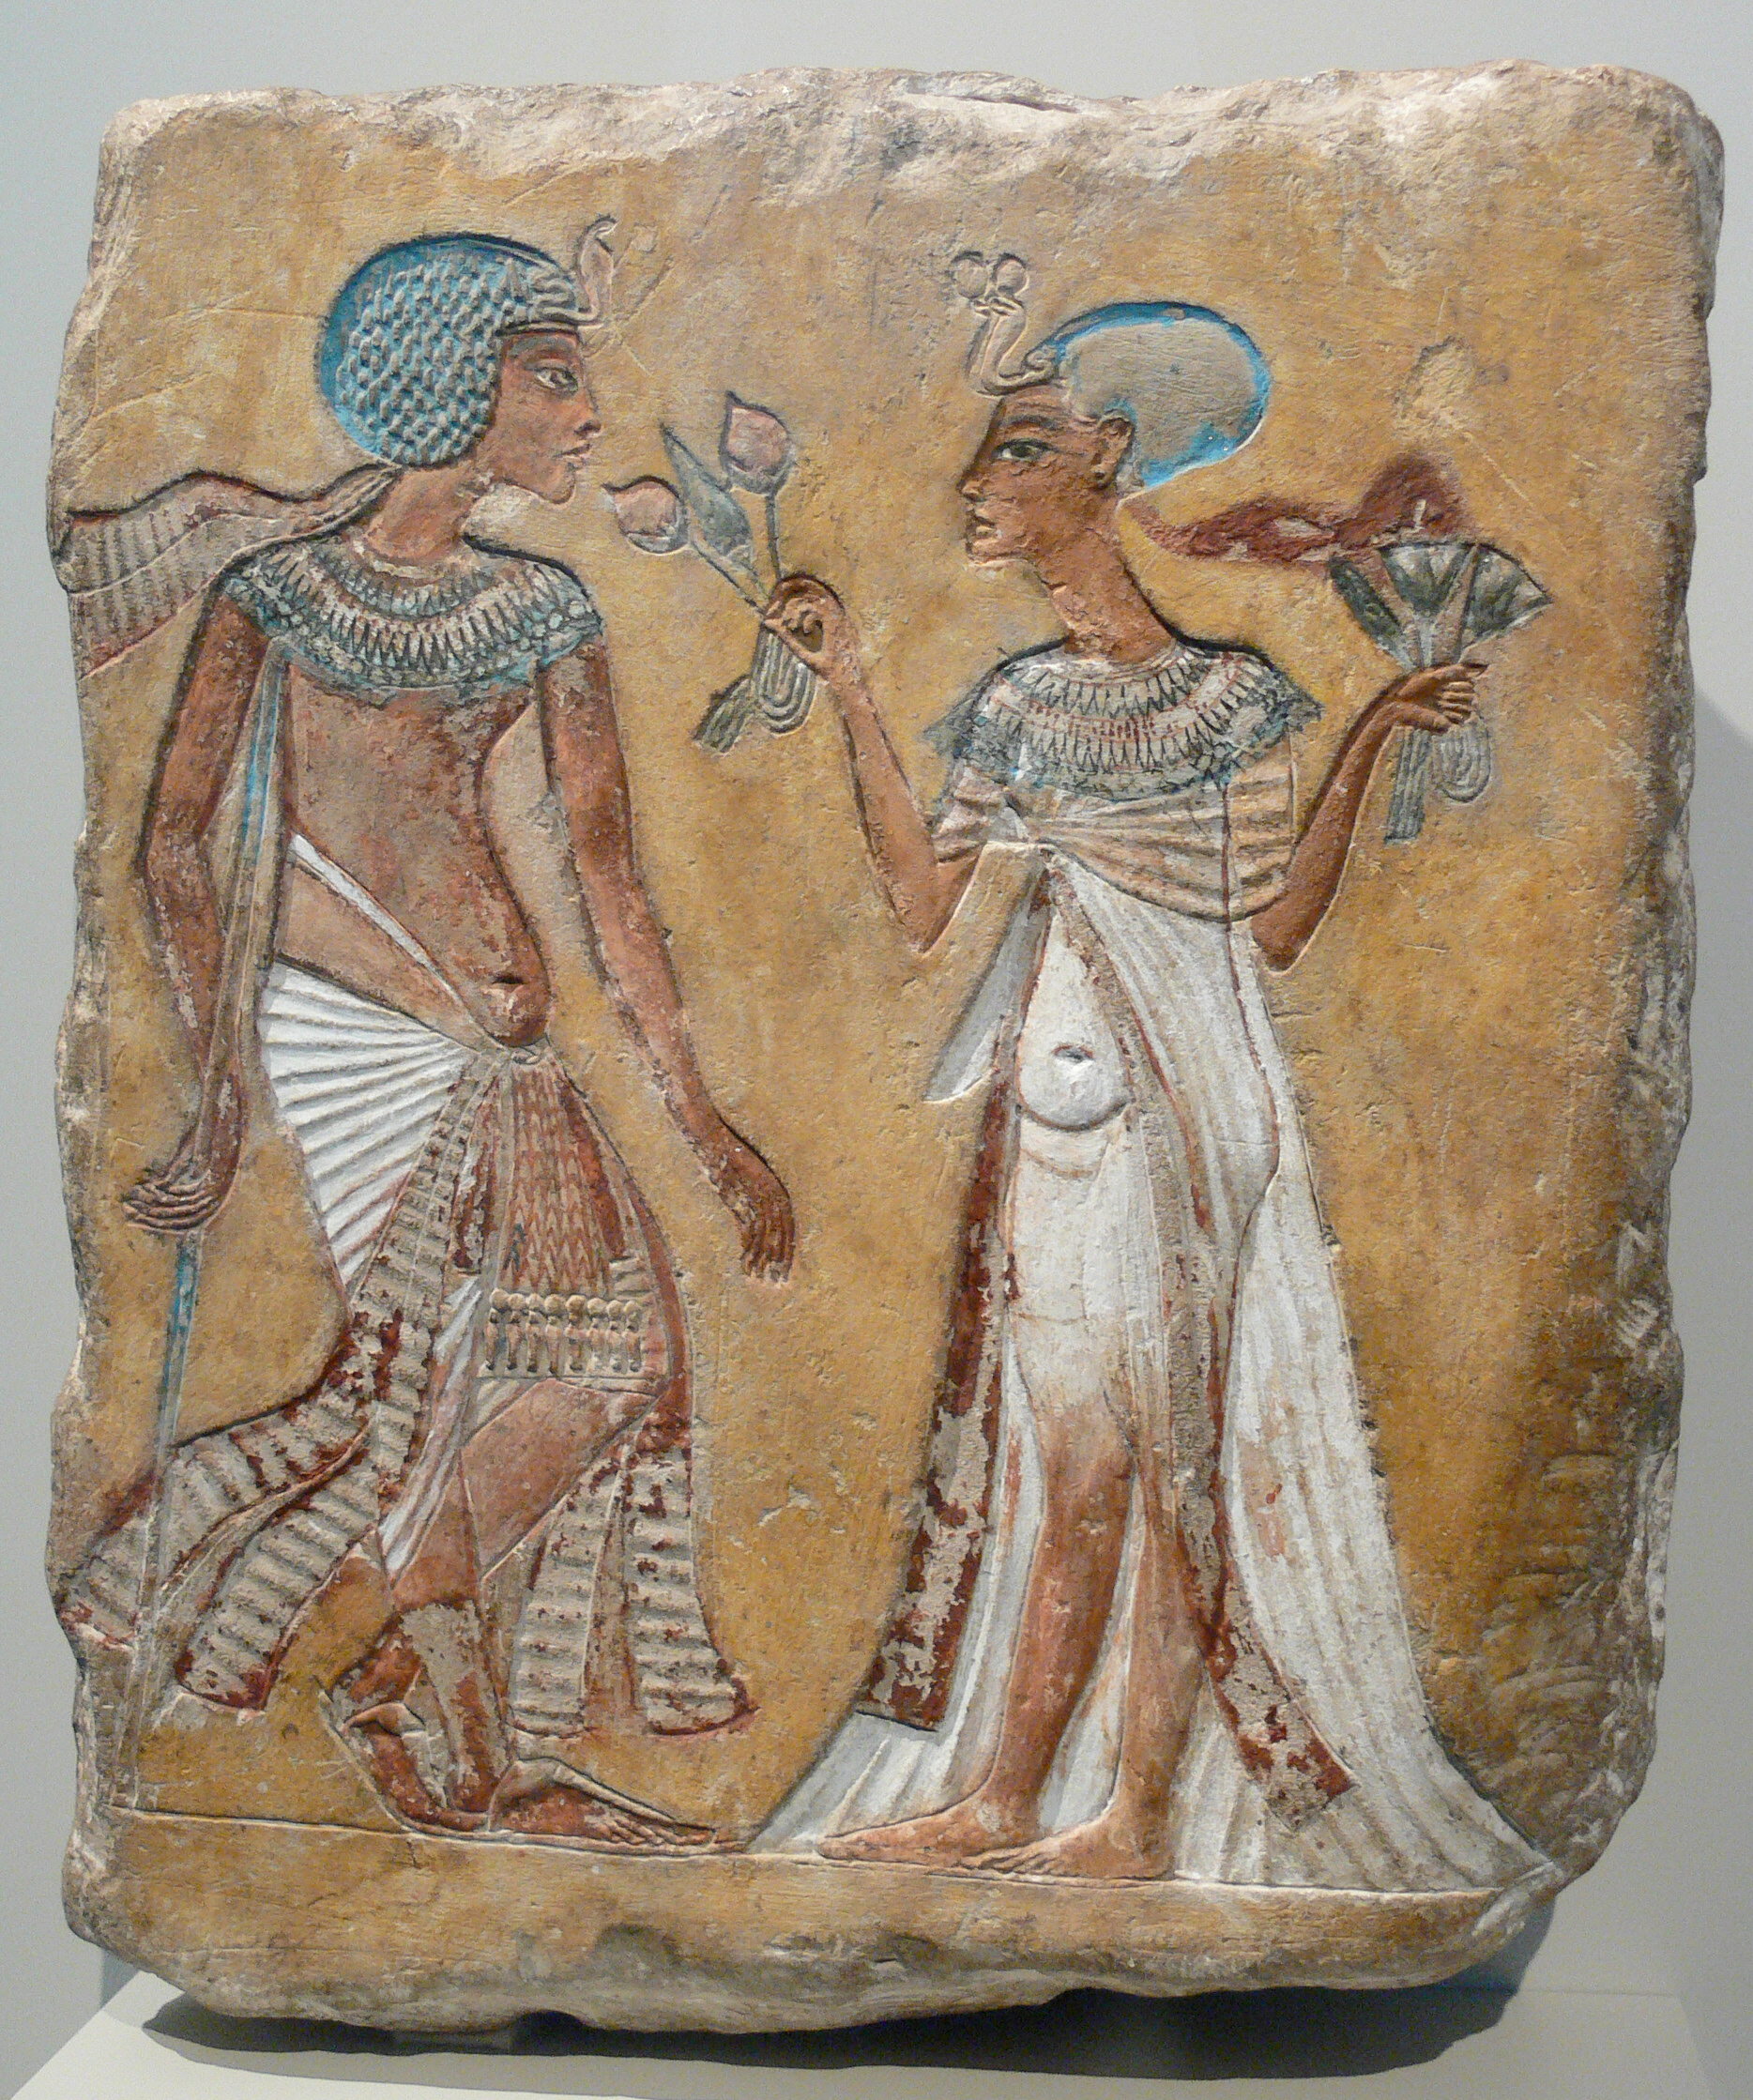 This image is commonly taken to be Smenkhkare and Meritaten, though it may be Tutankhamun and Ankhesenamun. Ancient history gets very confusing. - Courtesy of the Neues Museum, Berlin